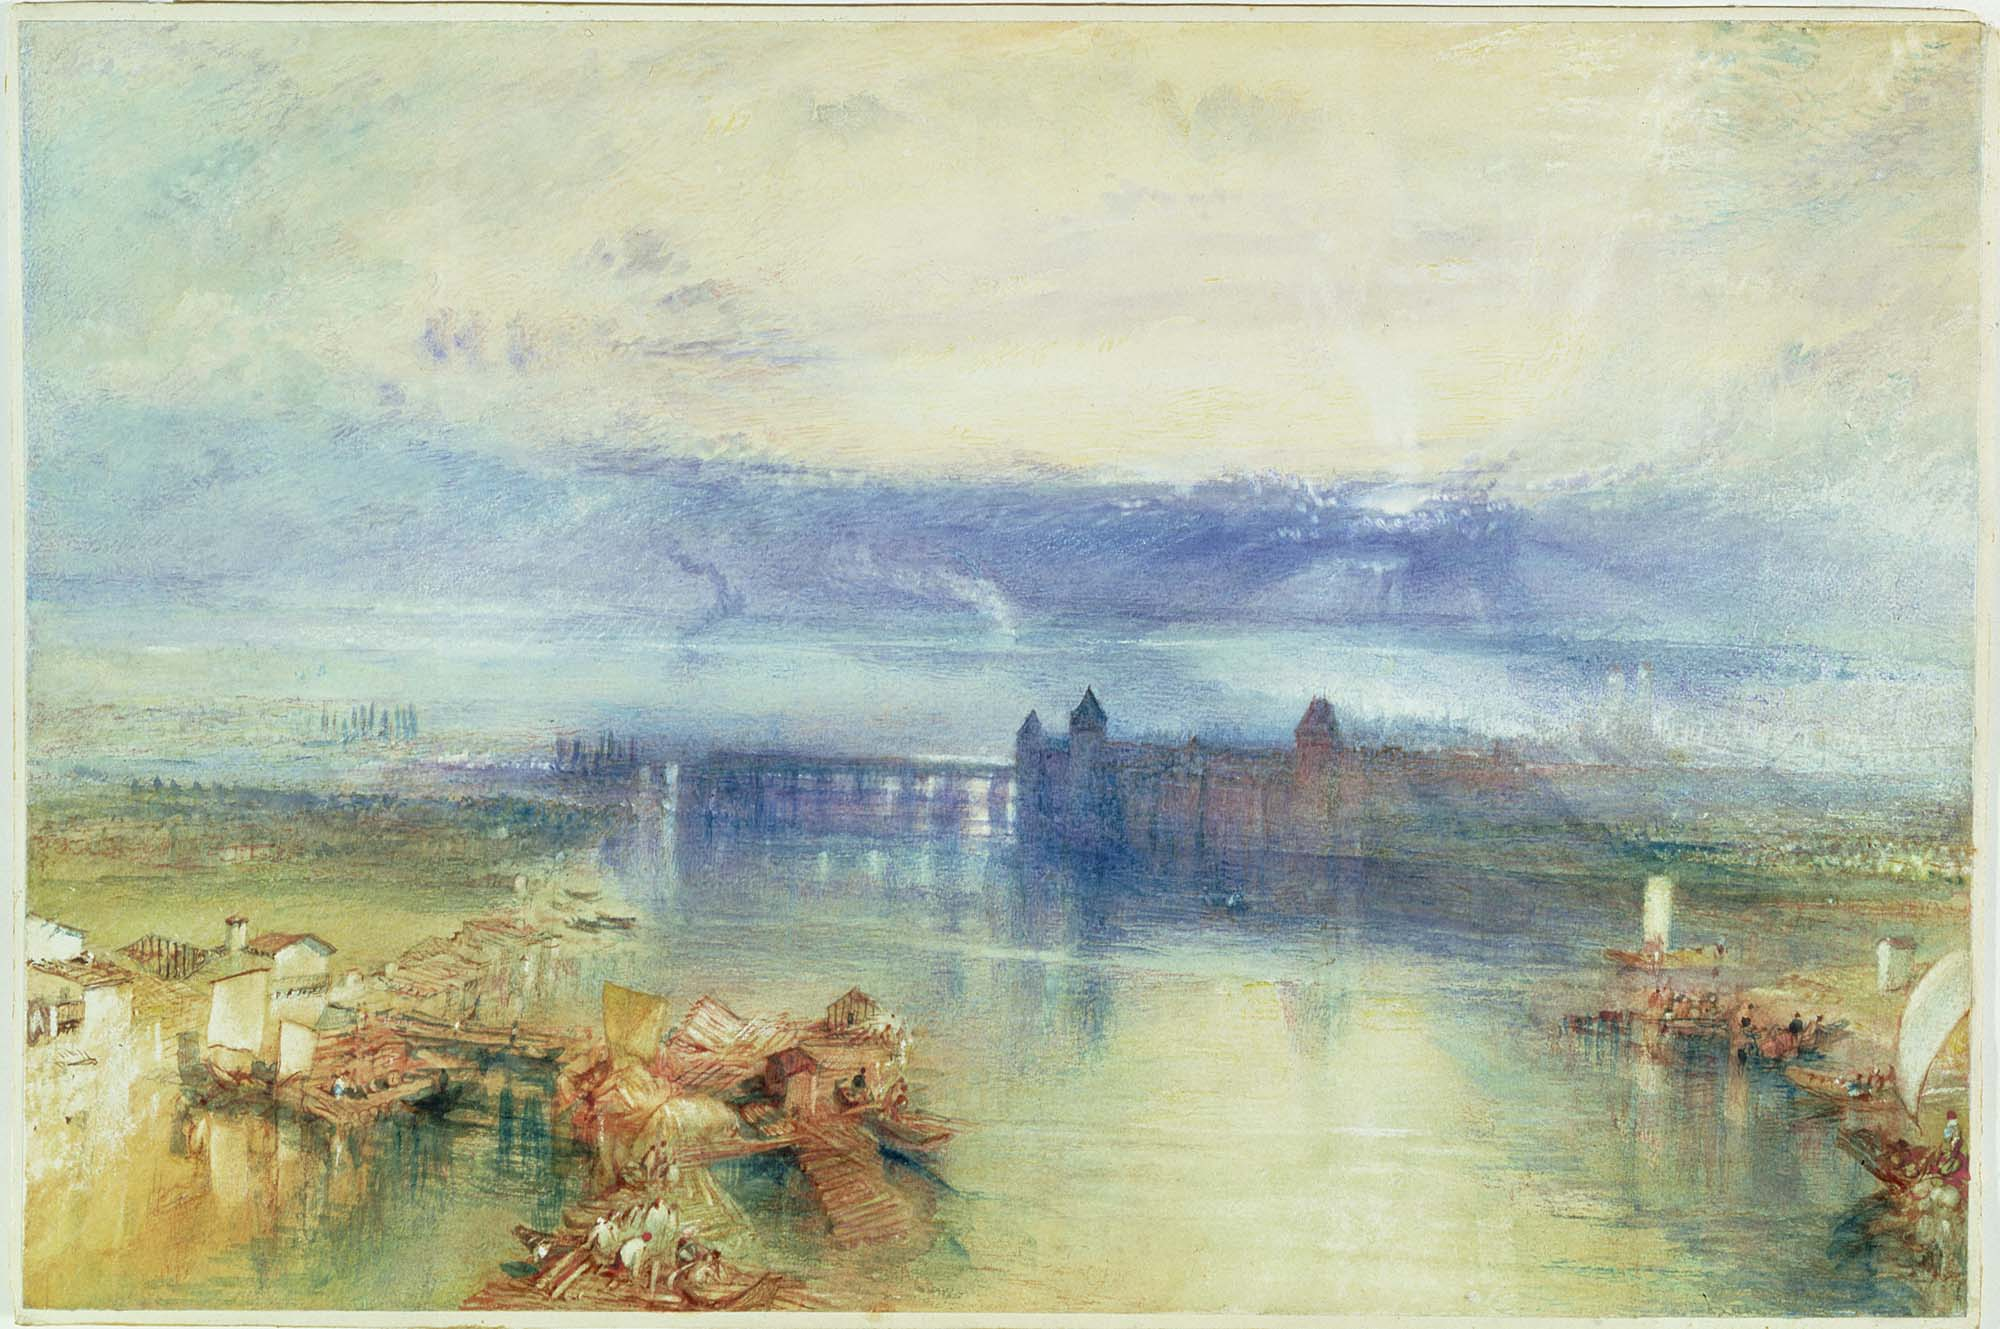 a classic Turner watercolour with golden yellow and blue hues across a lake with buildings in the distance